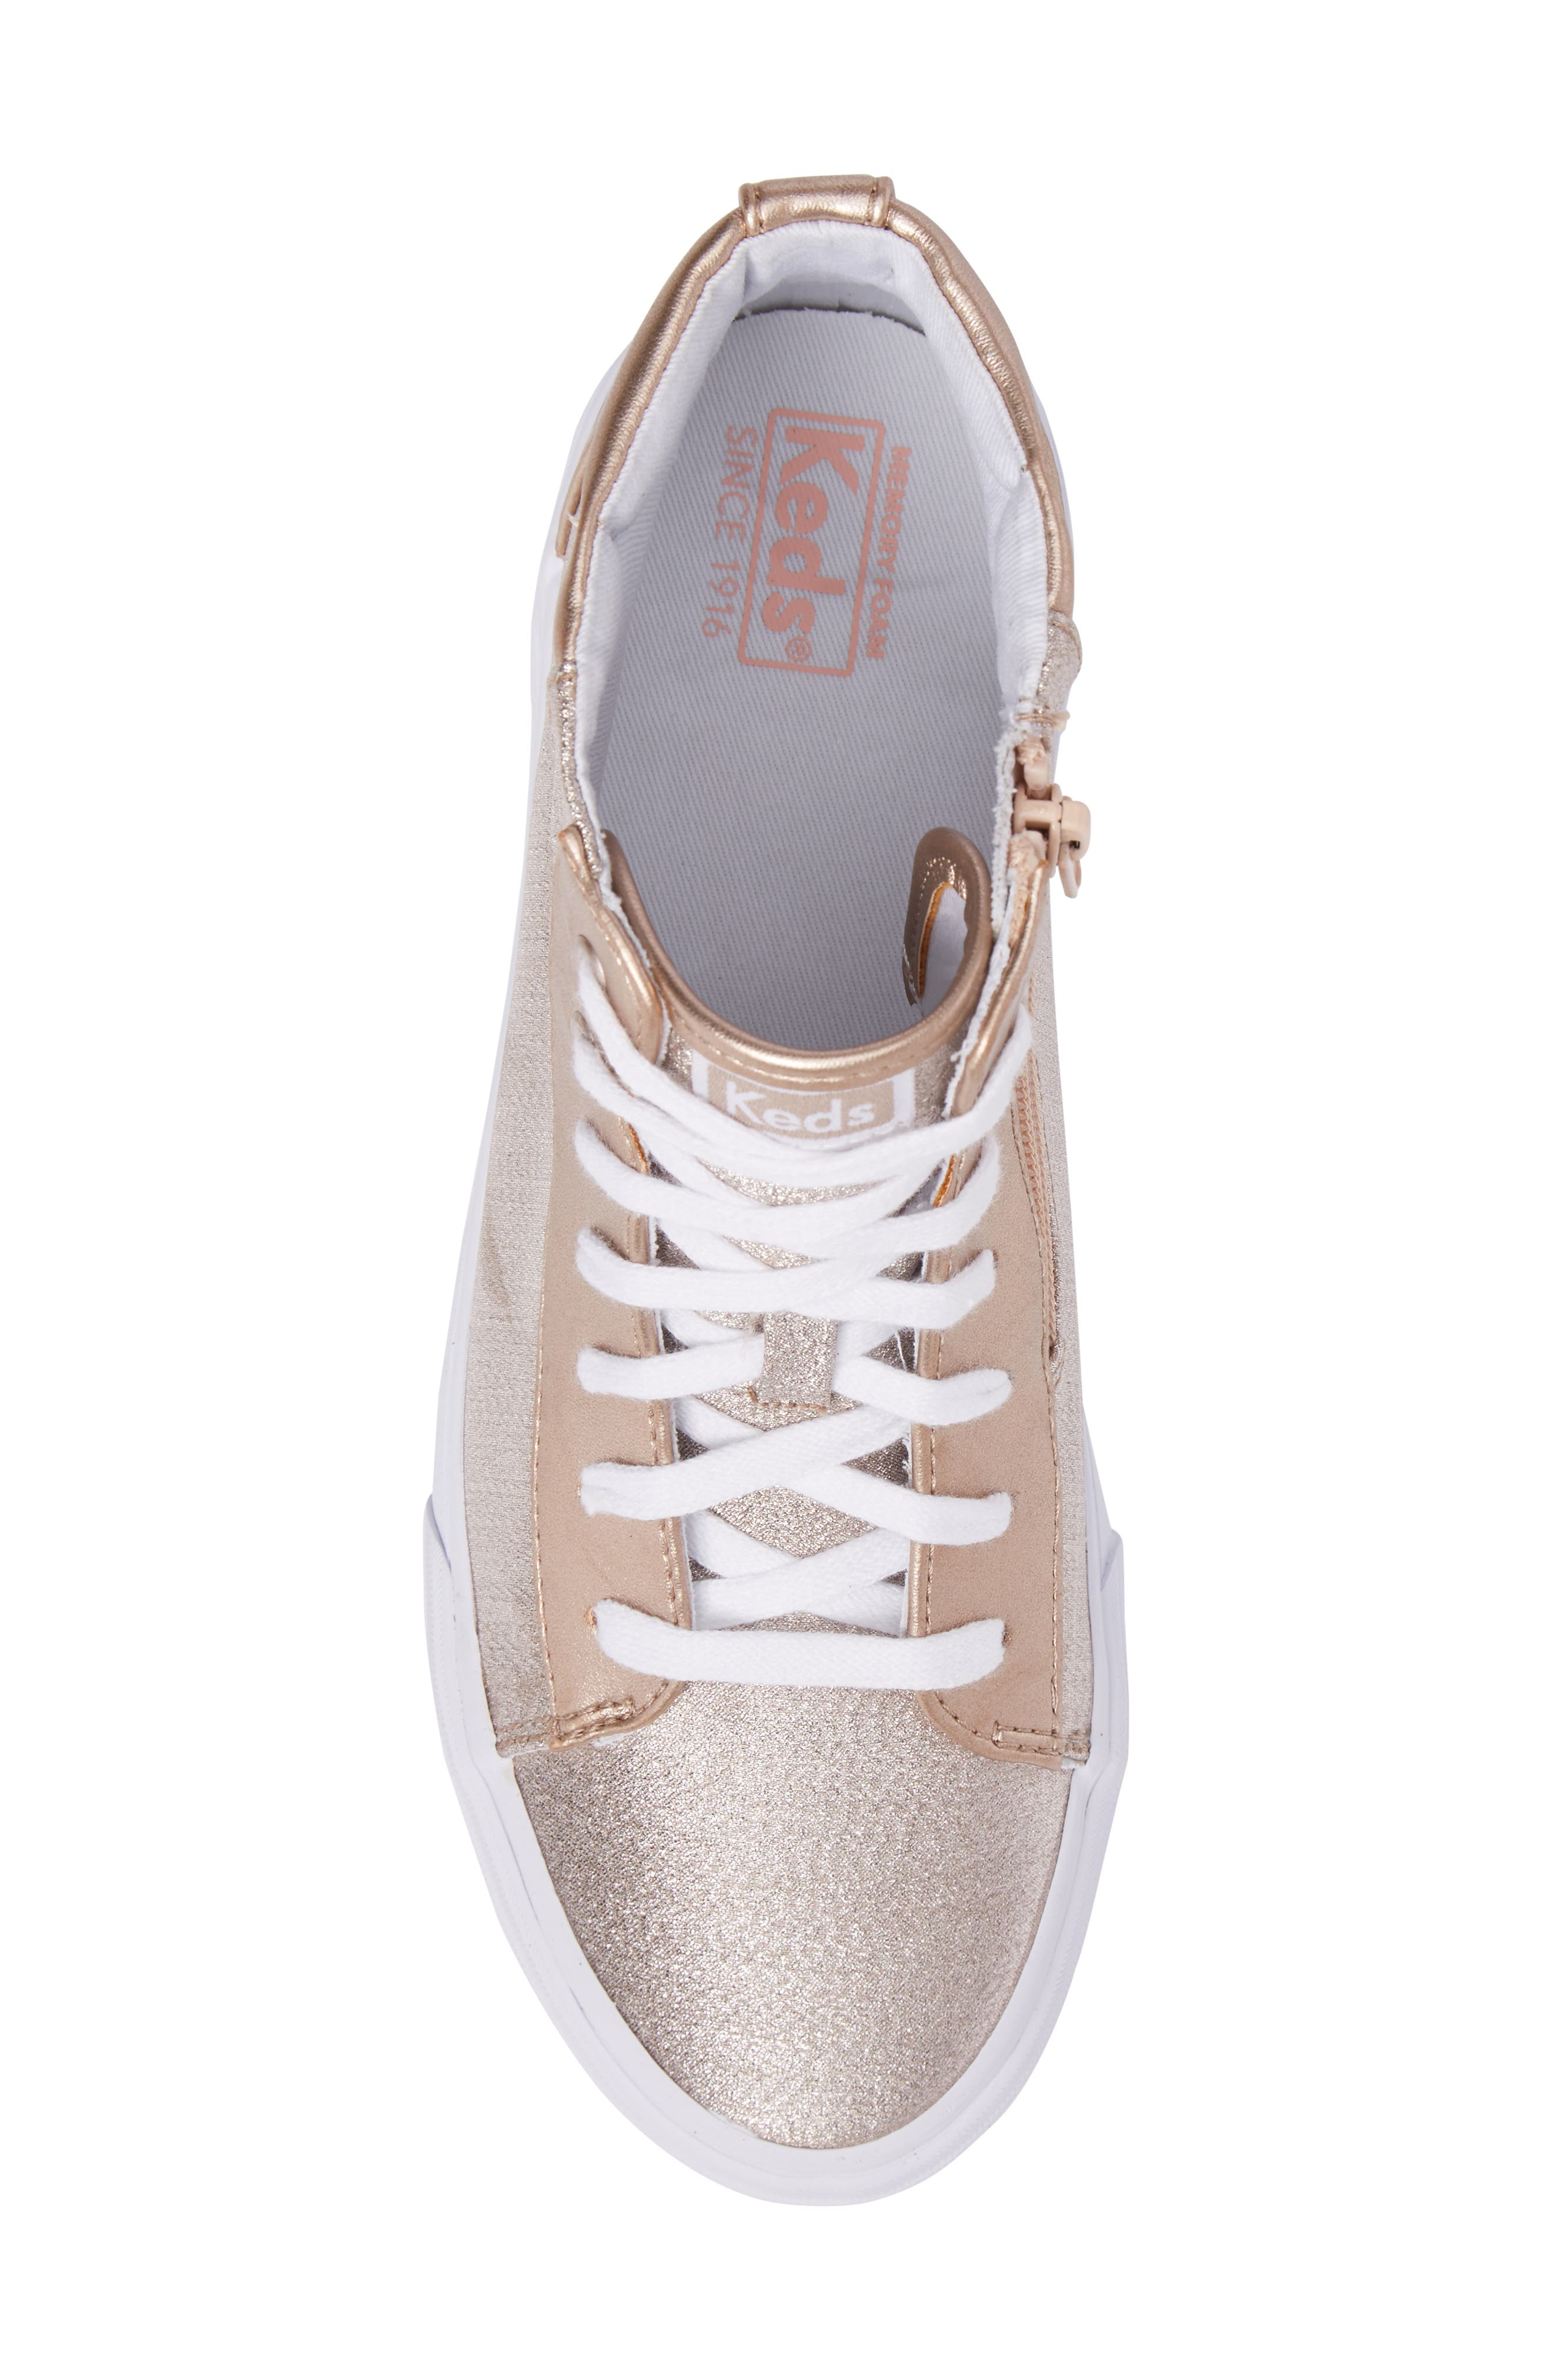 Double Up High Top Sneaker,                             Alternate thumbnail 5, color,                             Rose Gold